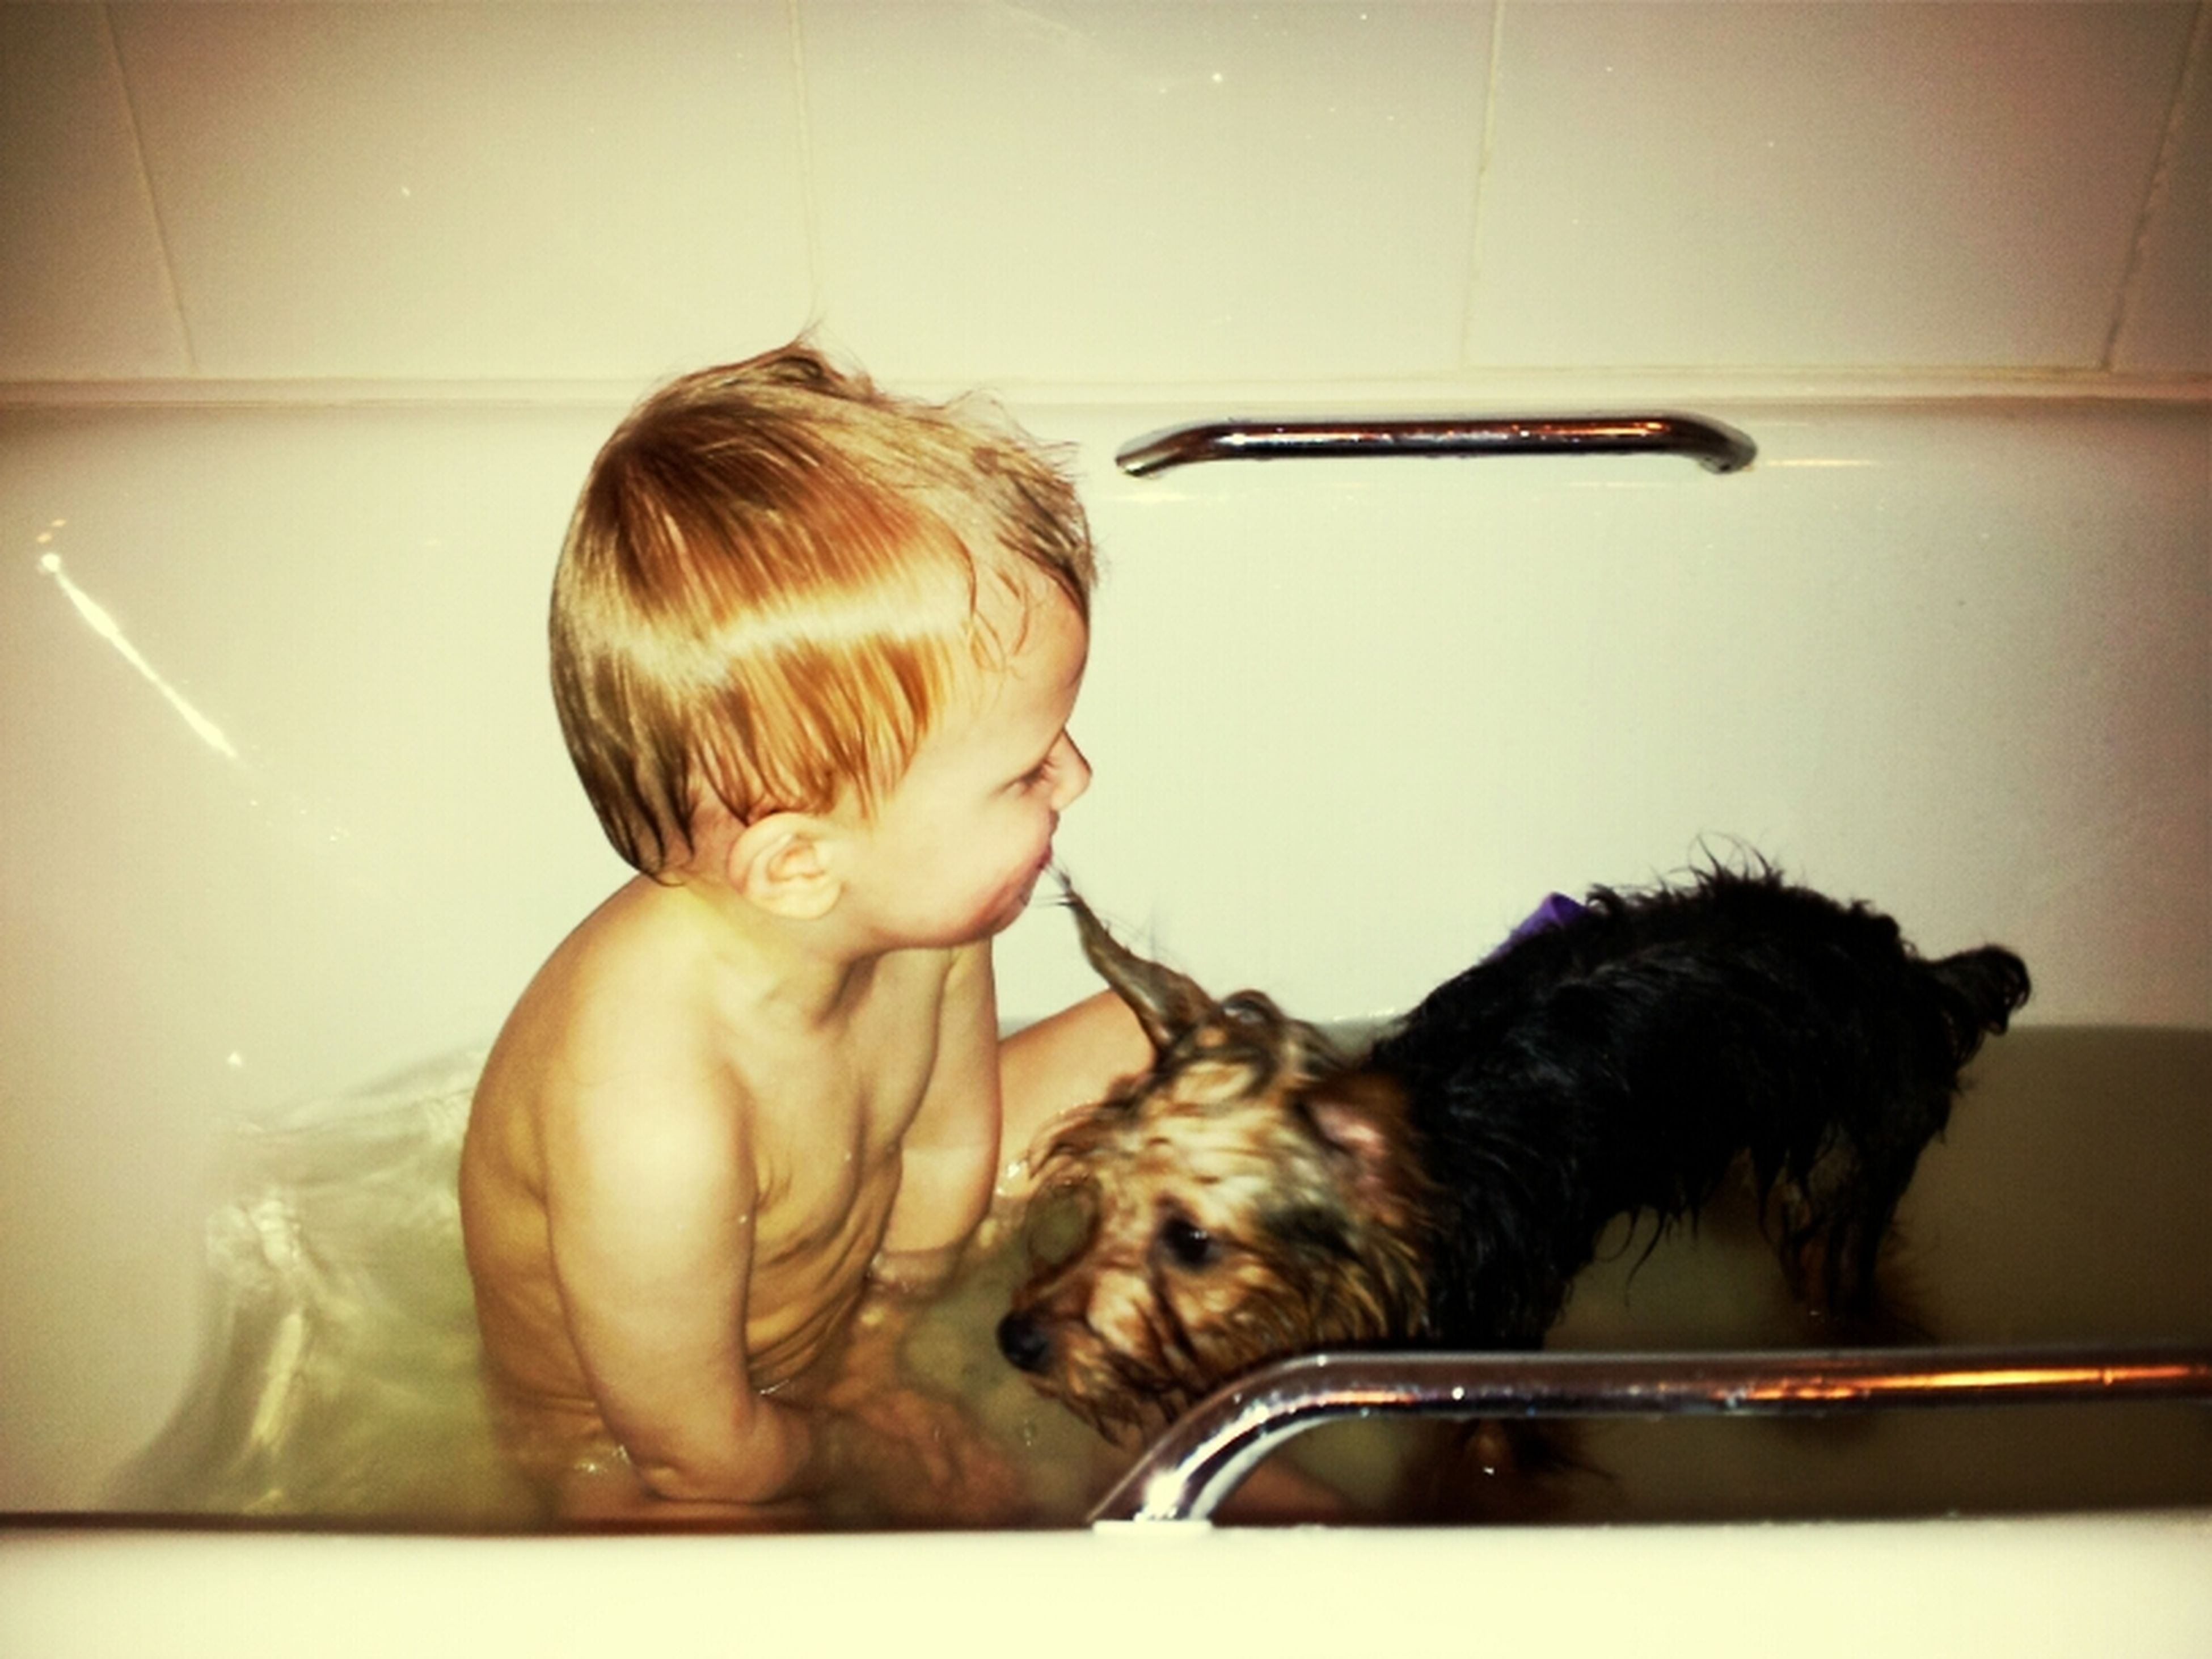 indoors, home interior, domestic animals, pets, sitting, domestic room, lifestyles, relaxation, mammal, person, leisure activity, dog, one animal, domestic life, bathroom, domestic bathroom, home, young women